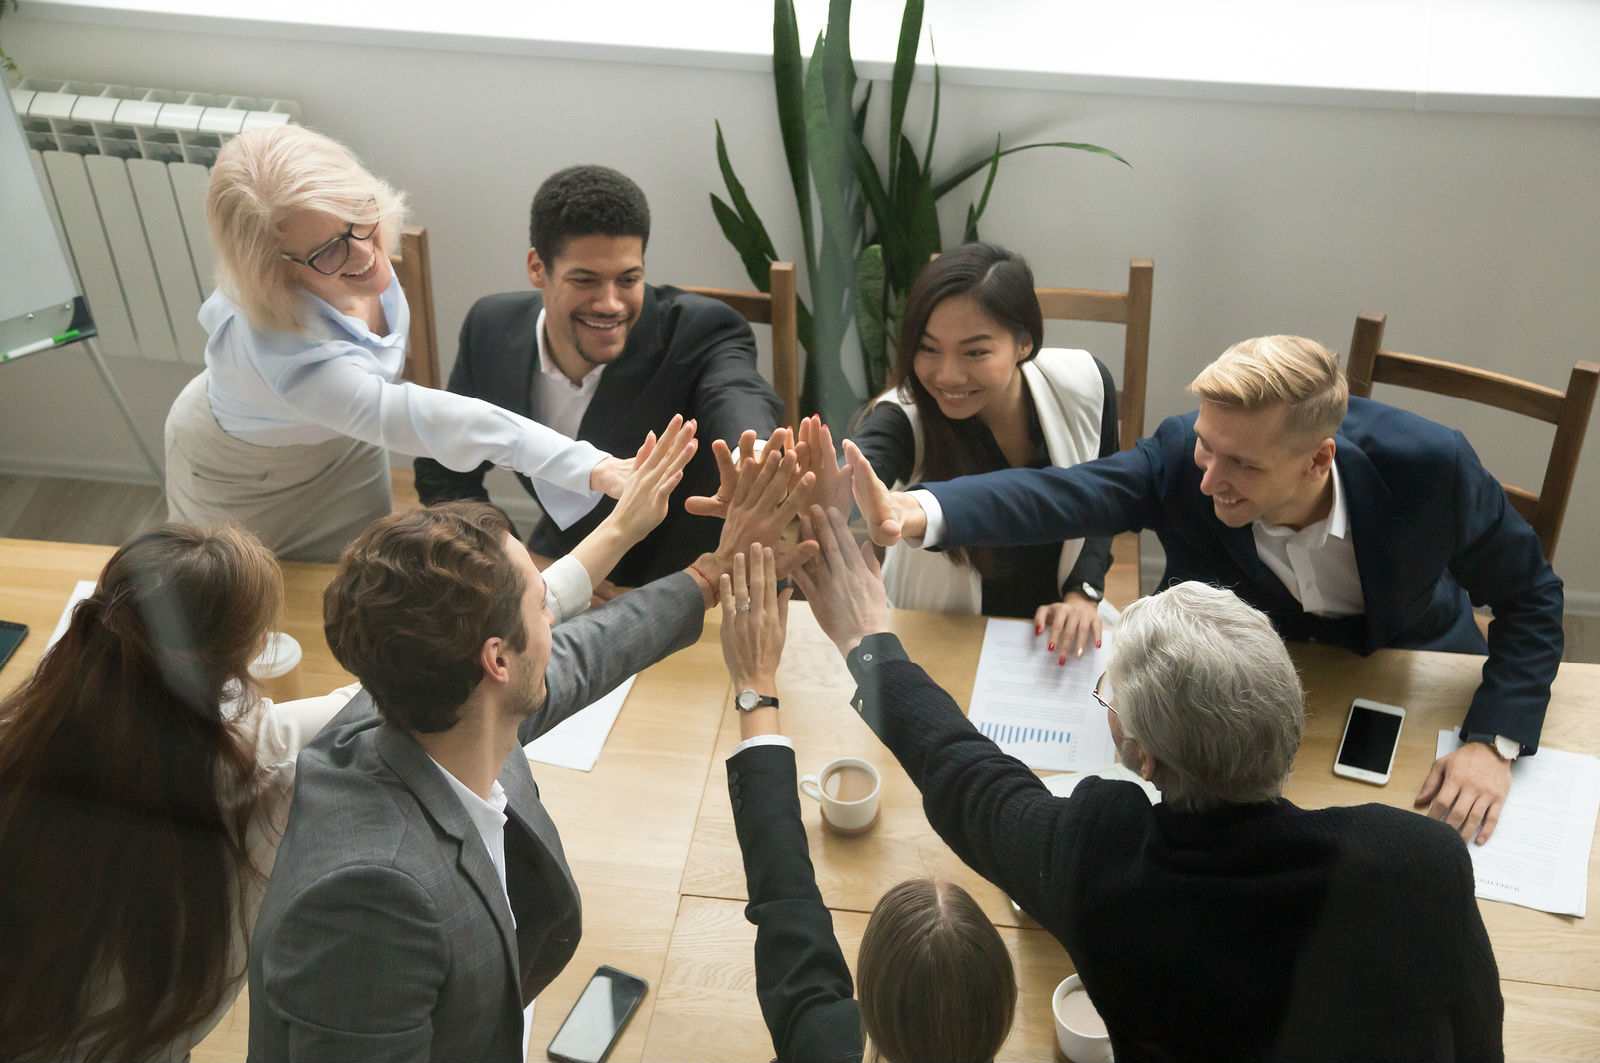 How To Regain Team Spirit After Failure: Leadership Tips